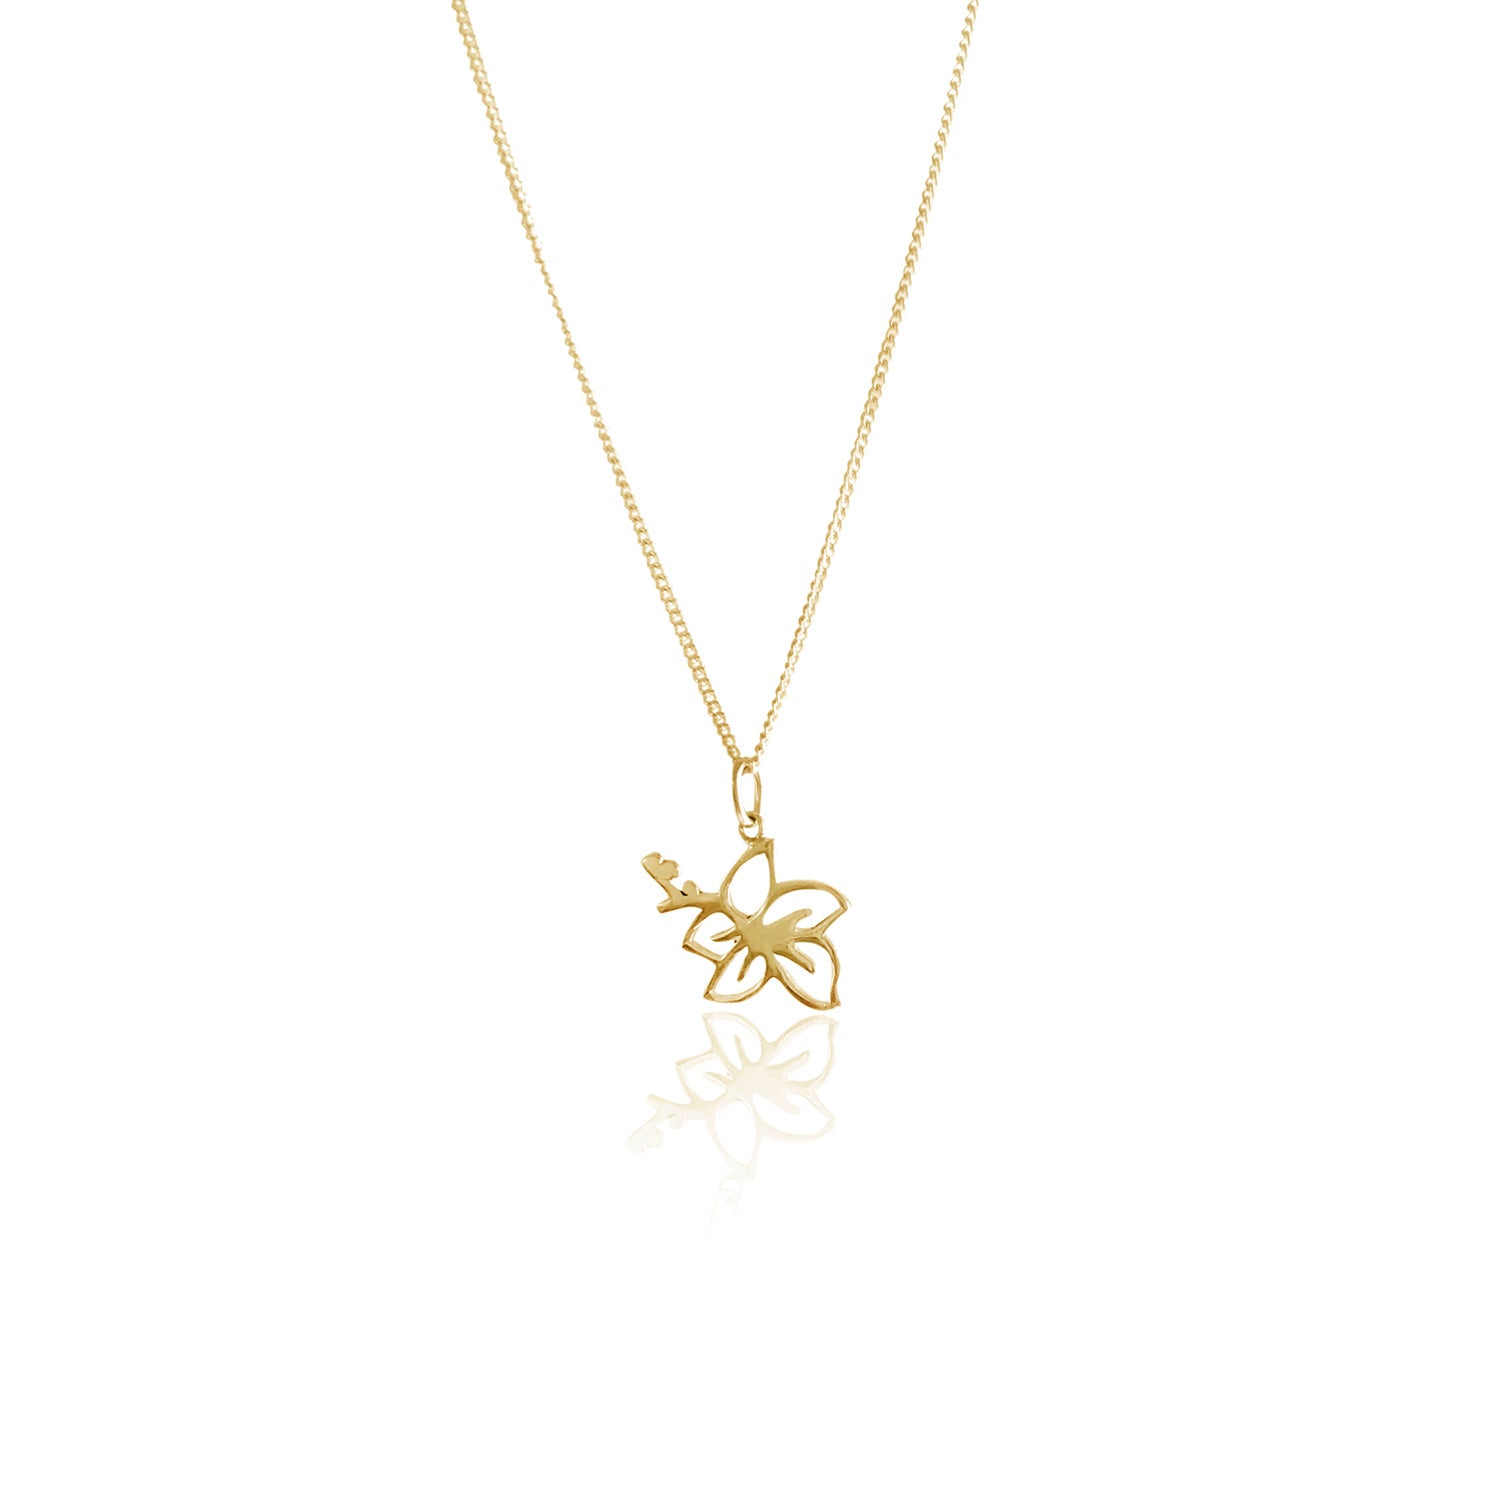 Goldfish Kiss Hibiscus Flower Charm Necklace - Gold